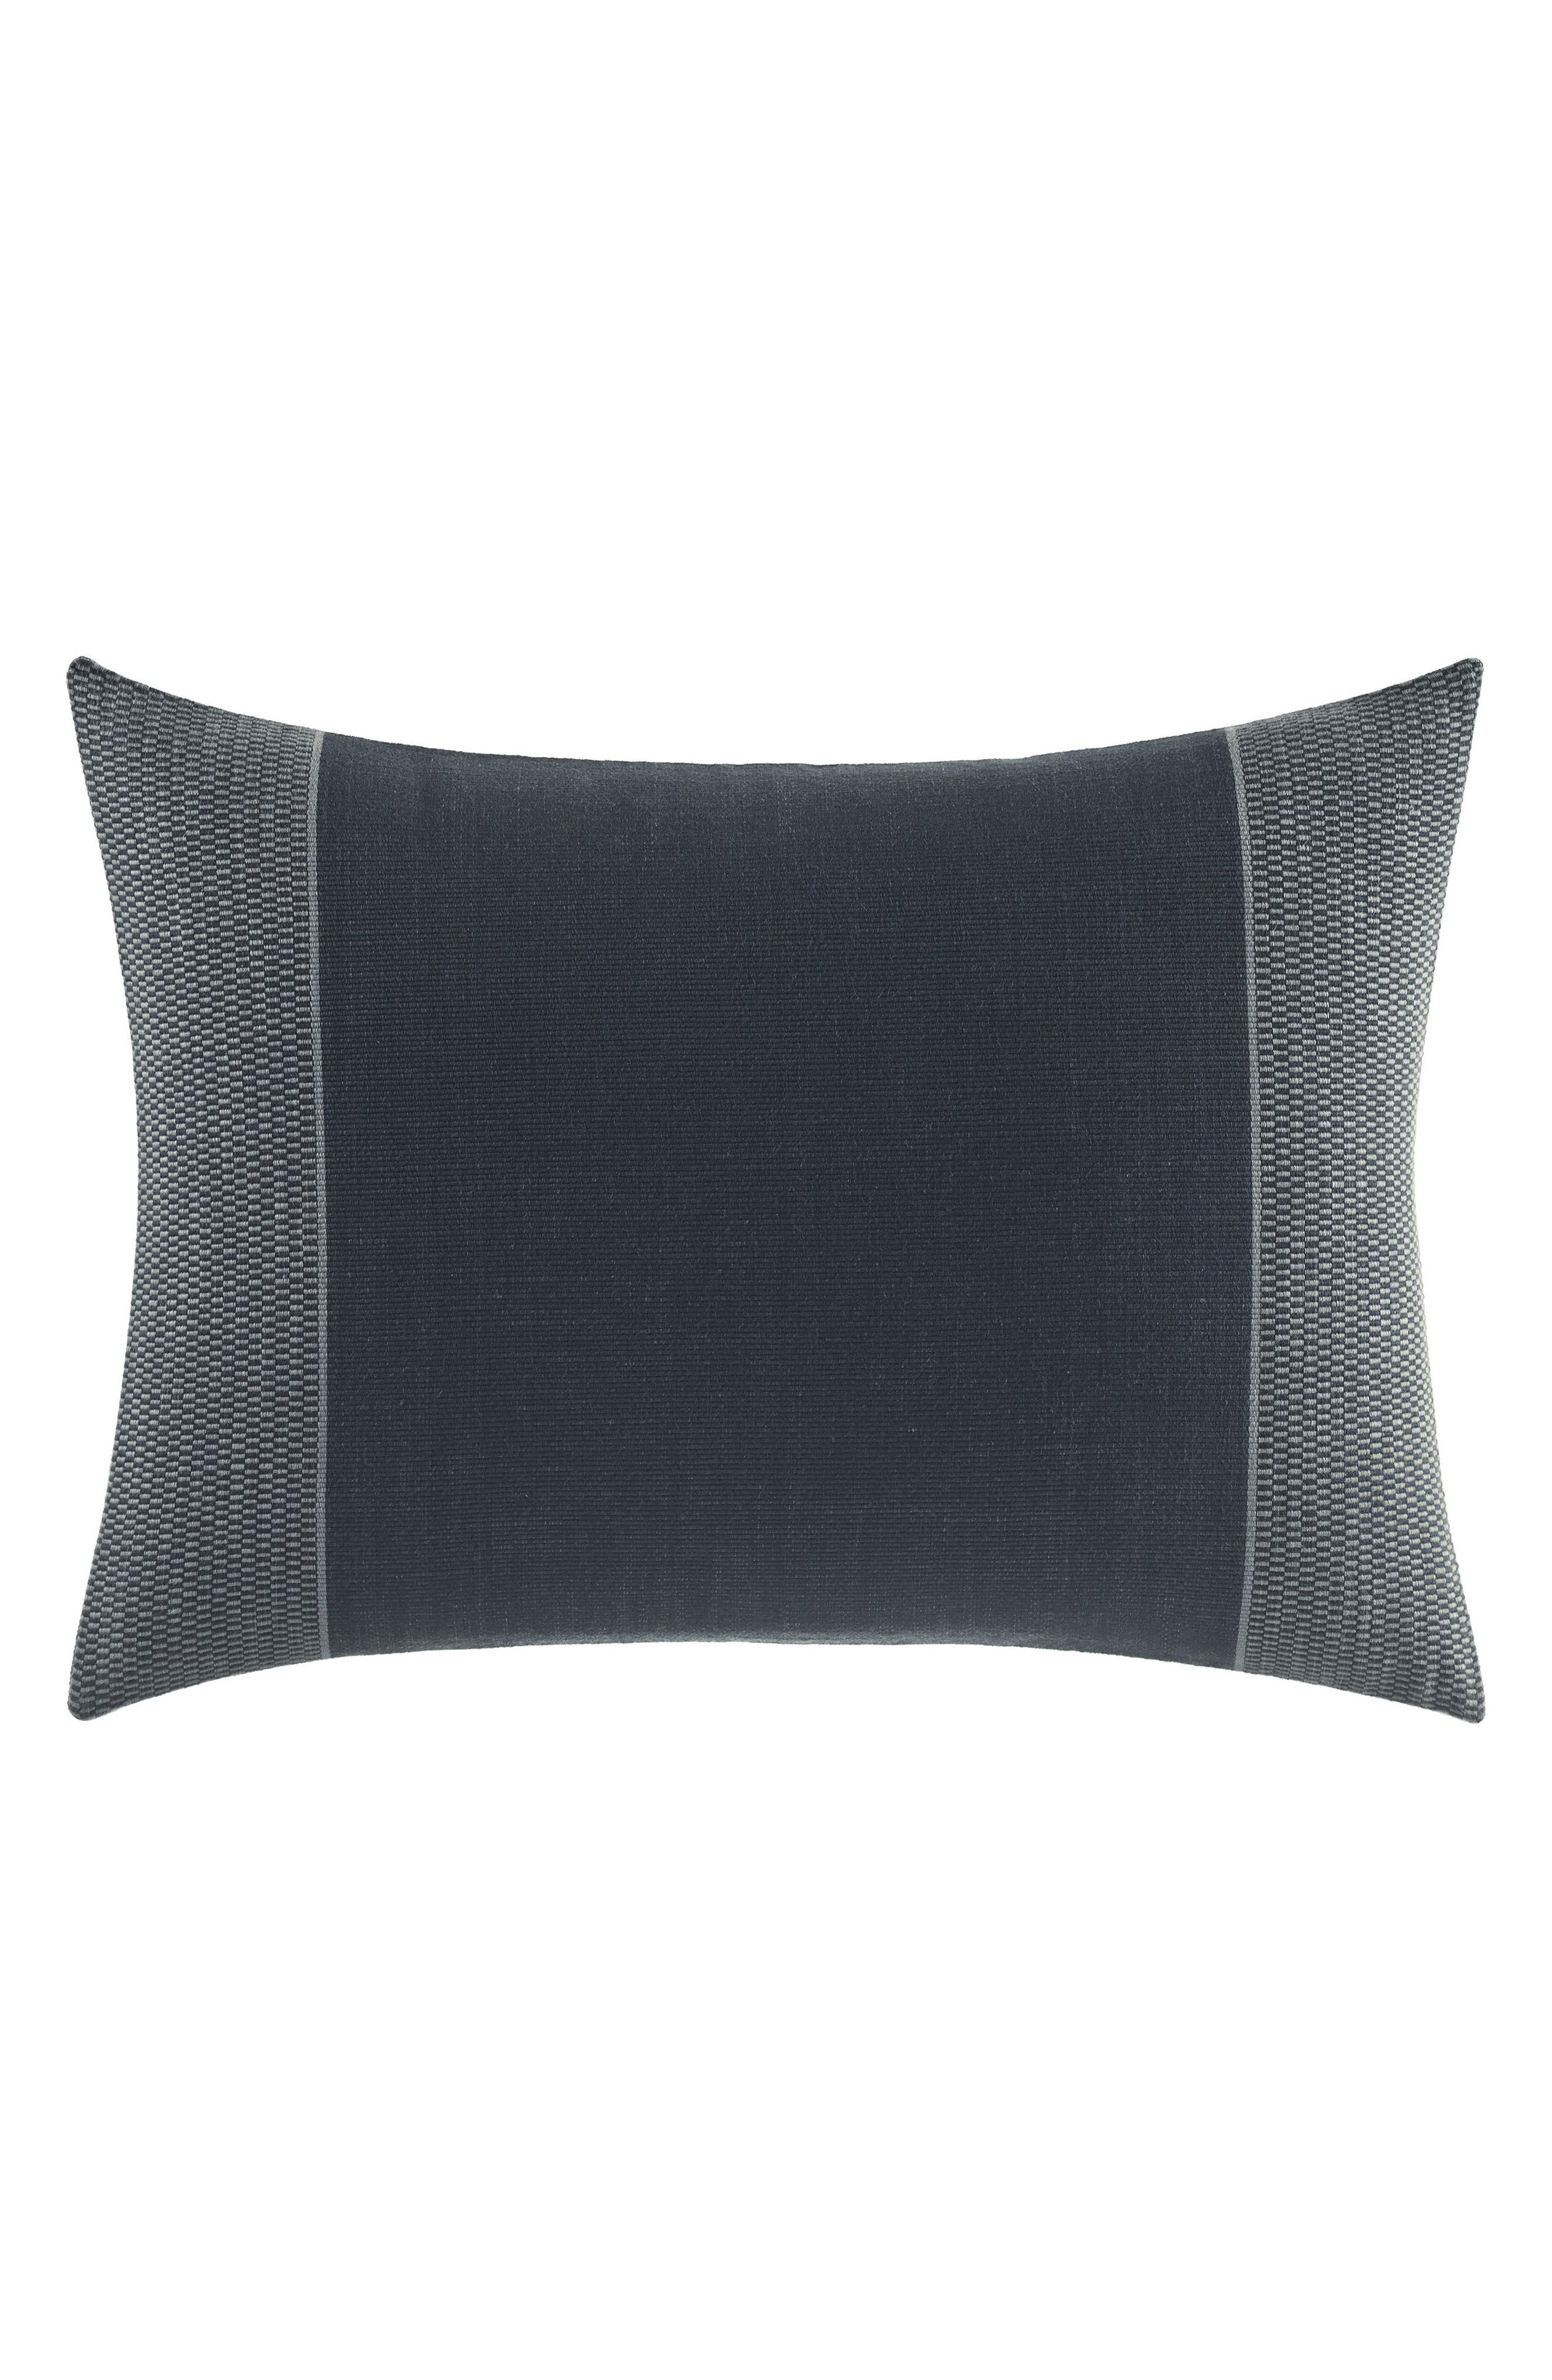 Nomad Accent Pillow,                         Main,                         color, Navy